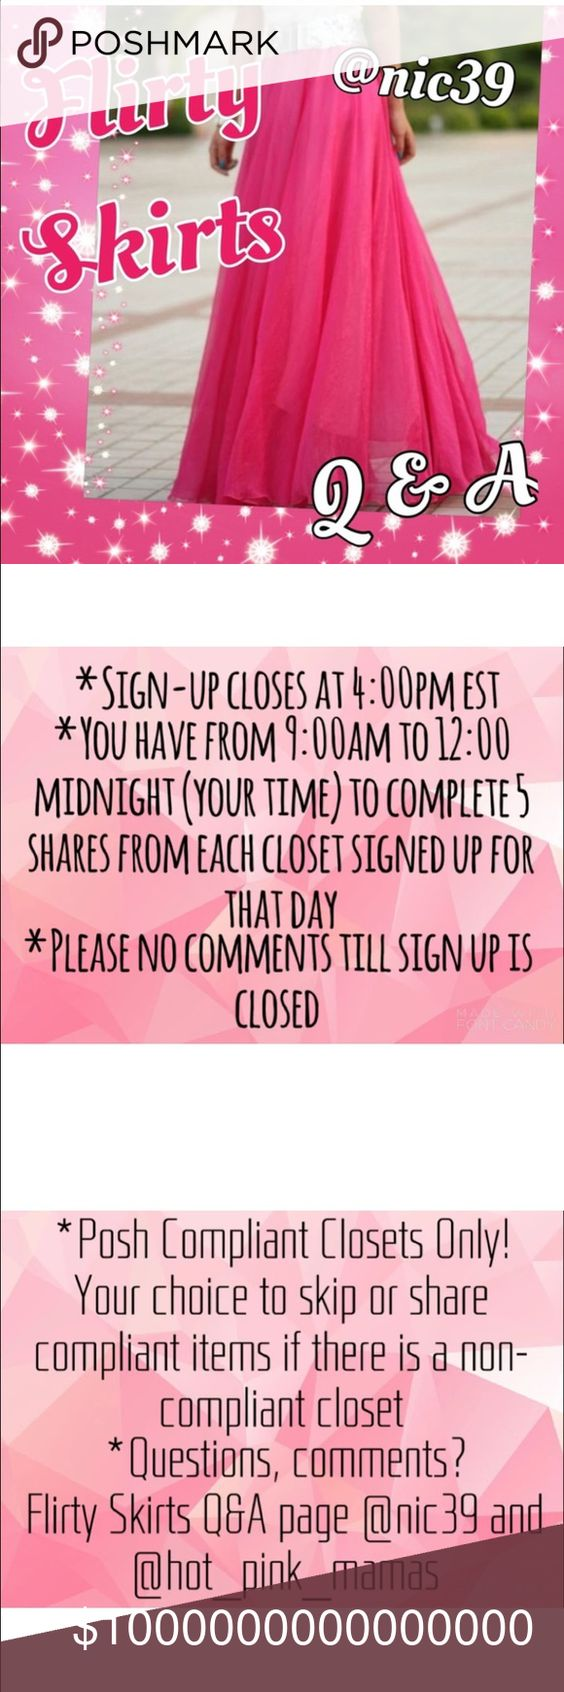 Flirty Skirts Q&A @nic39 Share 5 skirts from all who sign up. Sign up closes at 4:00pm EST. Sharing starts at 9:00am EST until midnight your time. Please indicate when signing up if your new so we can properly introduce you! PLEASE NO COMMENTS ON SIGN UP PAGE UNTIL GROUP IS CLOSED! Direct all questions on here and tag me @nic39. If you tag the closet your question may be missed. Thanks for joining Flirty Skirts and let's have fun and make some sales!! Skirts